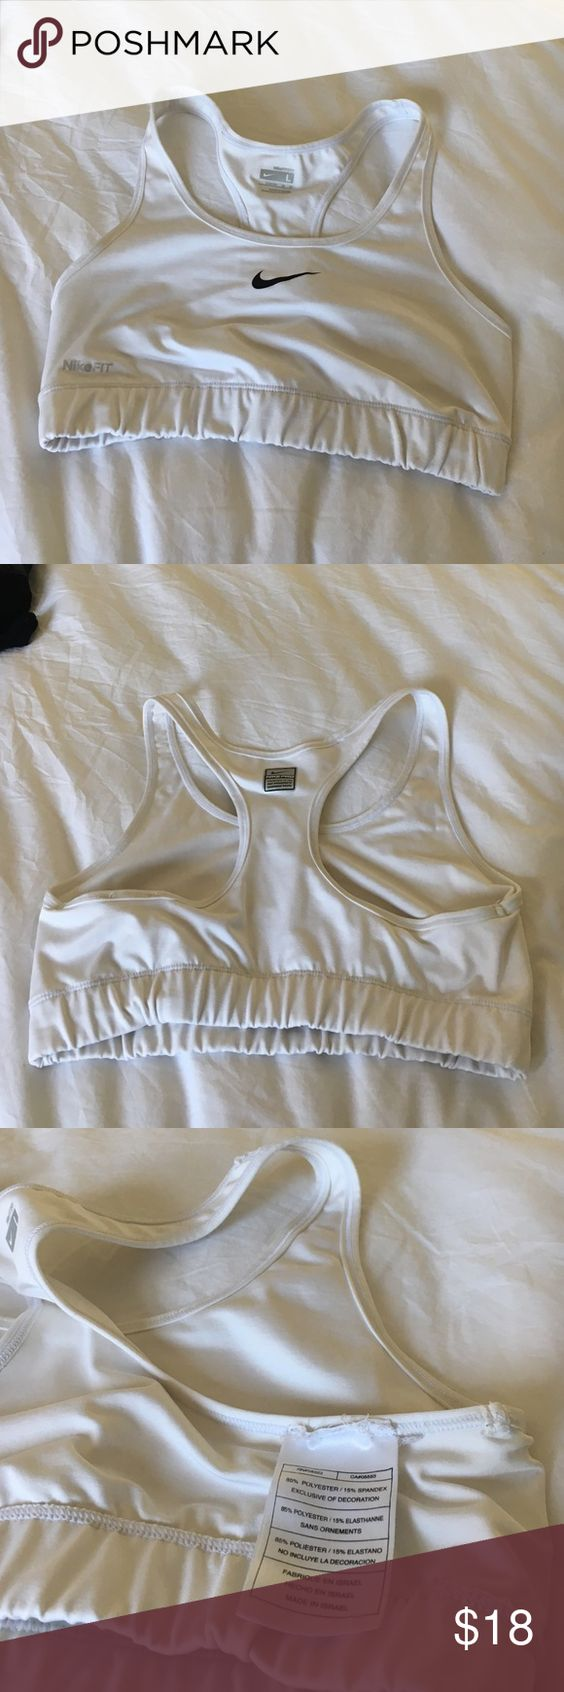 Nike sports bra in white In great condition. Small stain as pictured on band-probably removable with washing. Nike Intimates & Sleepwear Bras